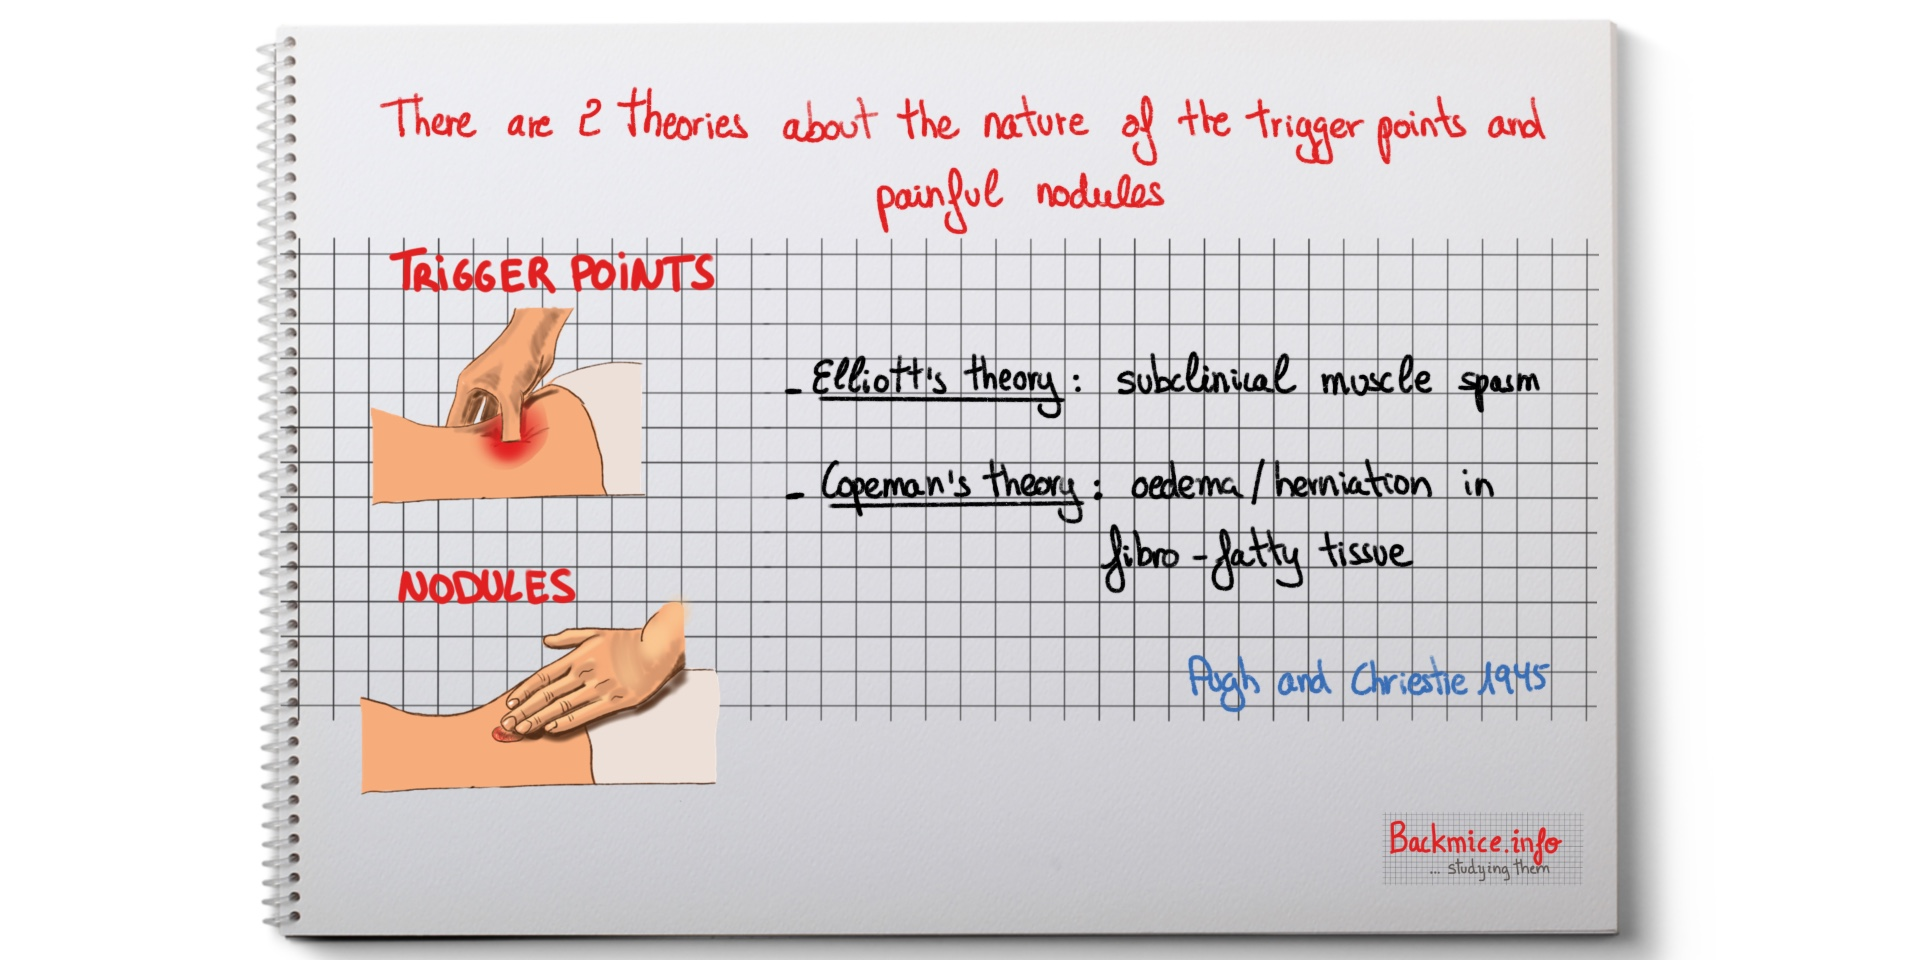 fibrositic nodules and trigger points